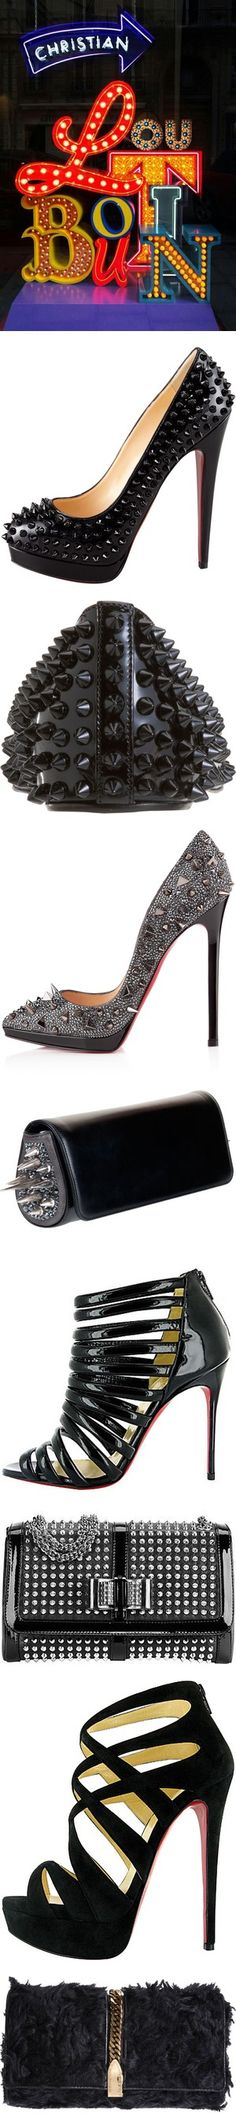 """christian louboutin""created by LOLO...this link keeps getting changed to spam. These images were found on the Christian Louboutin website."